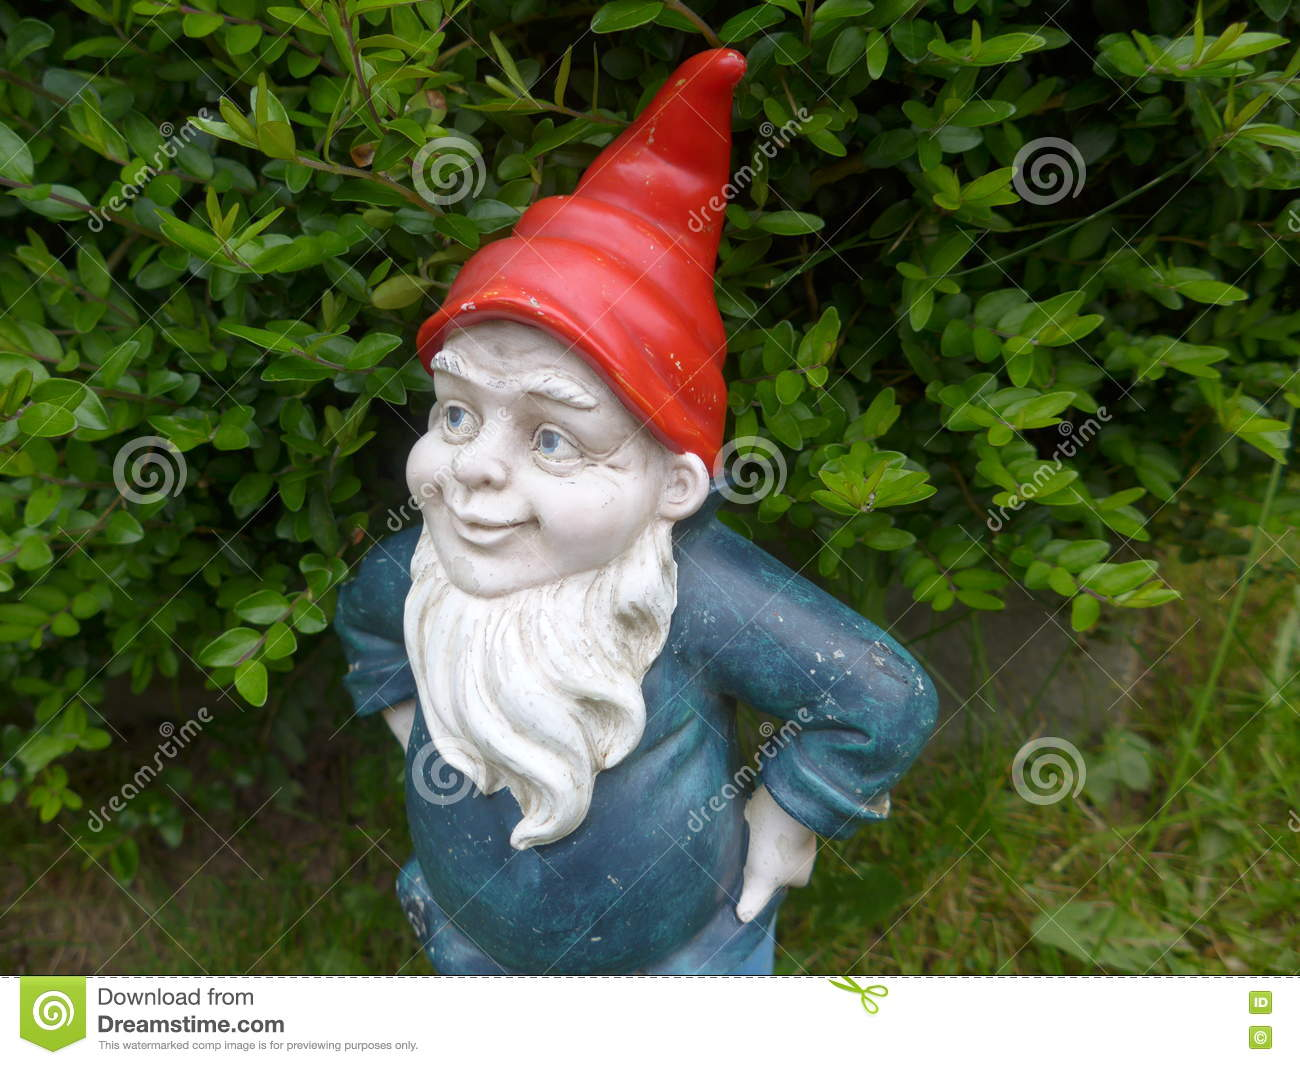 4ed8d546785 Garden Dwarf With Beard And A Red Hat Stock Photo - Image of ...